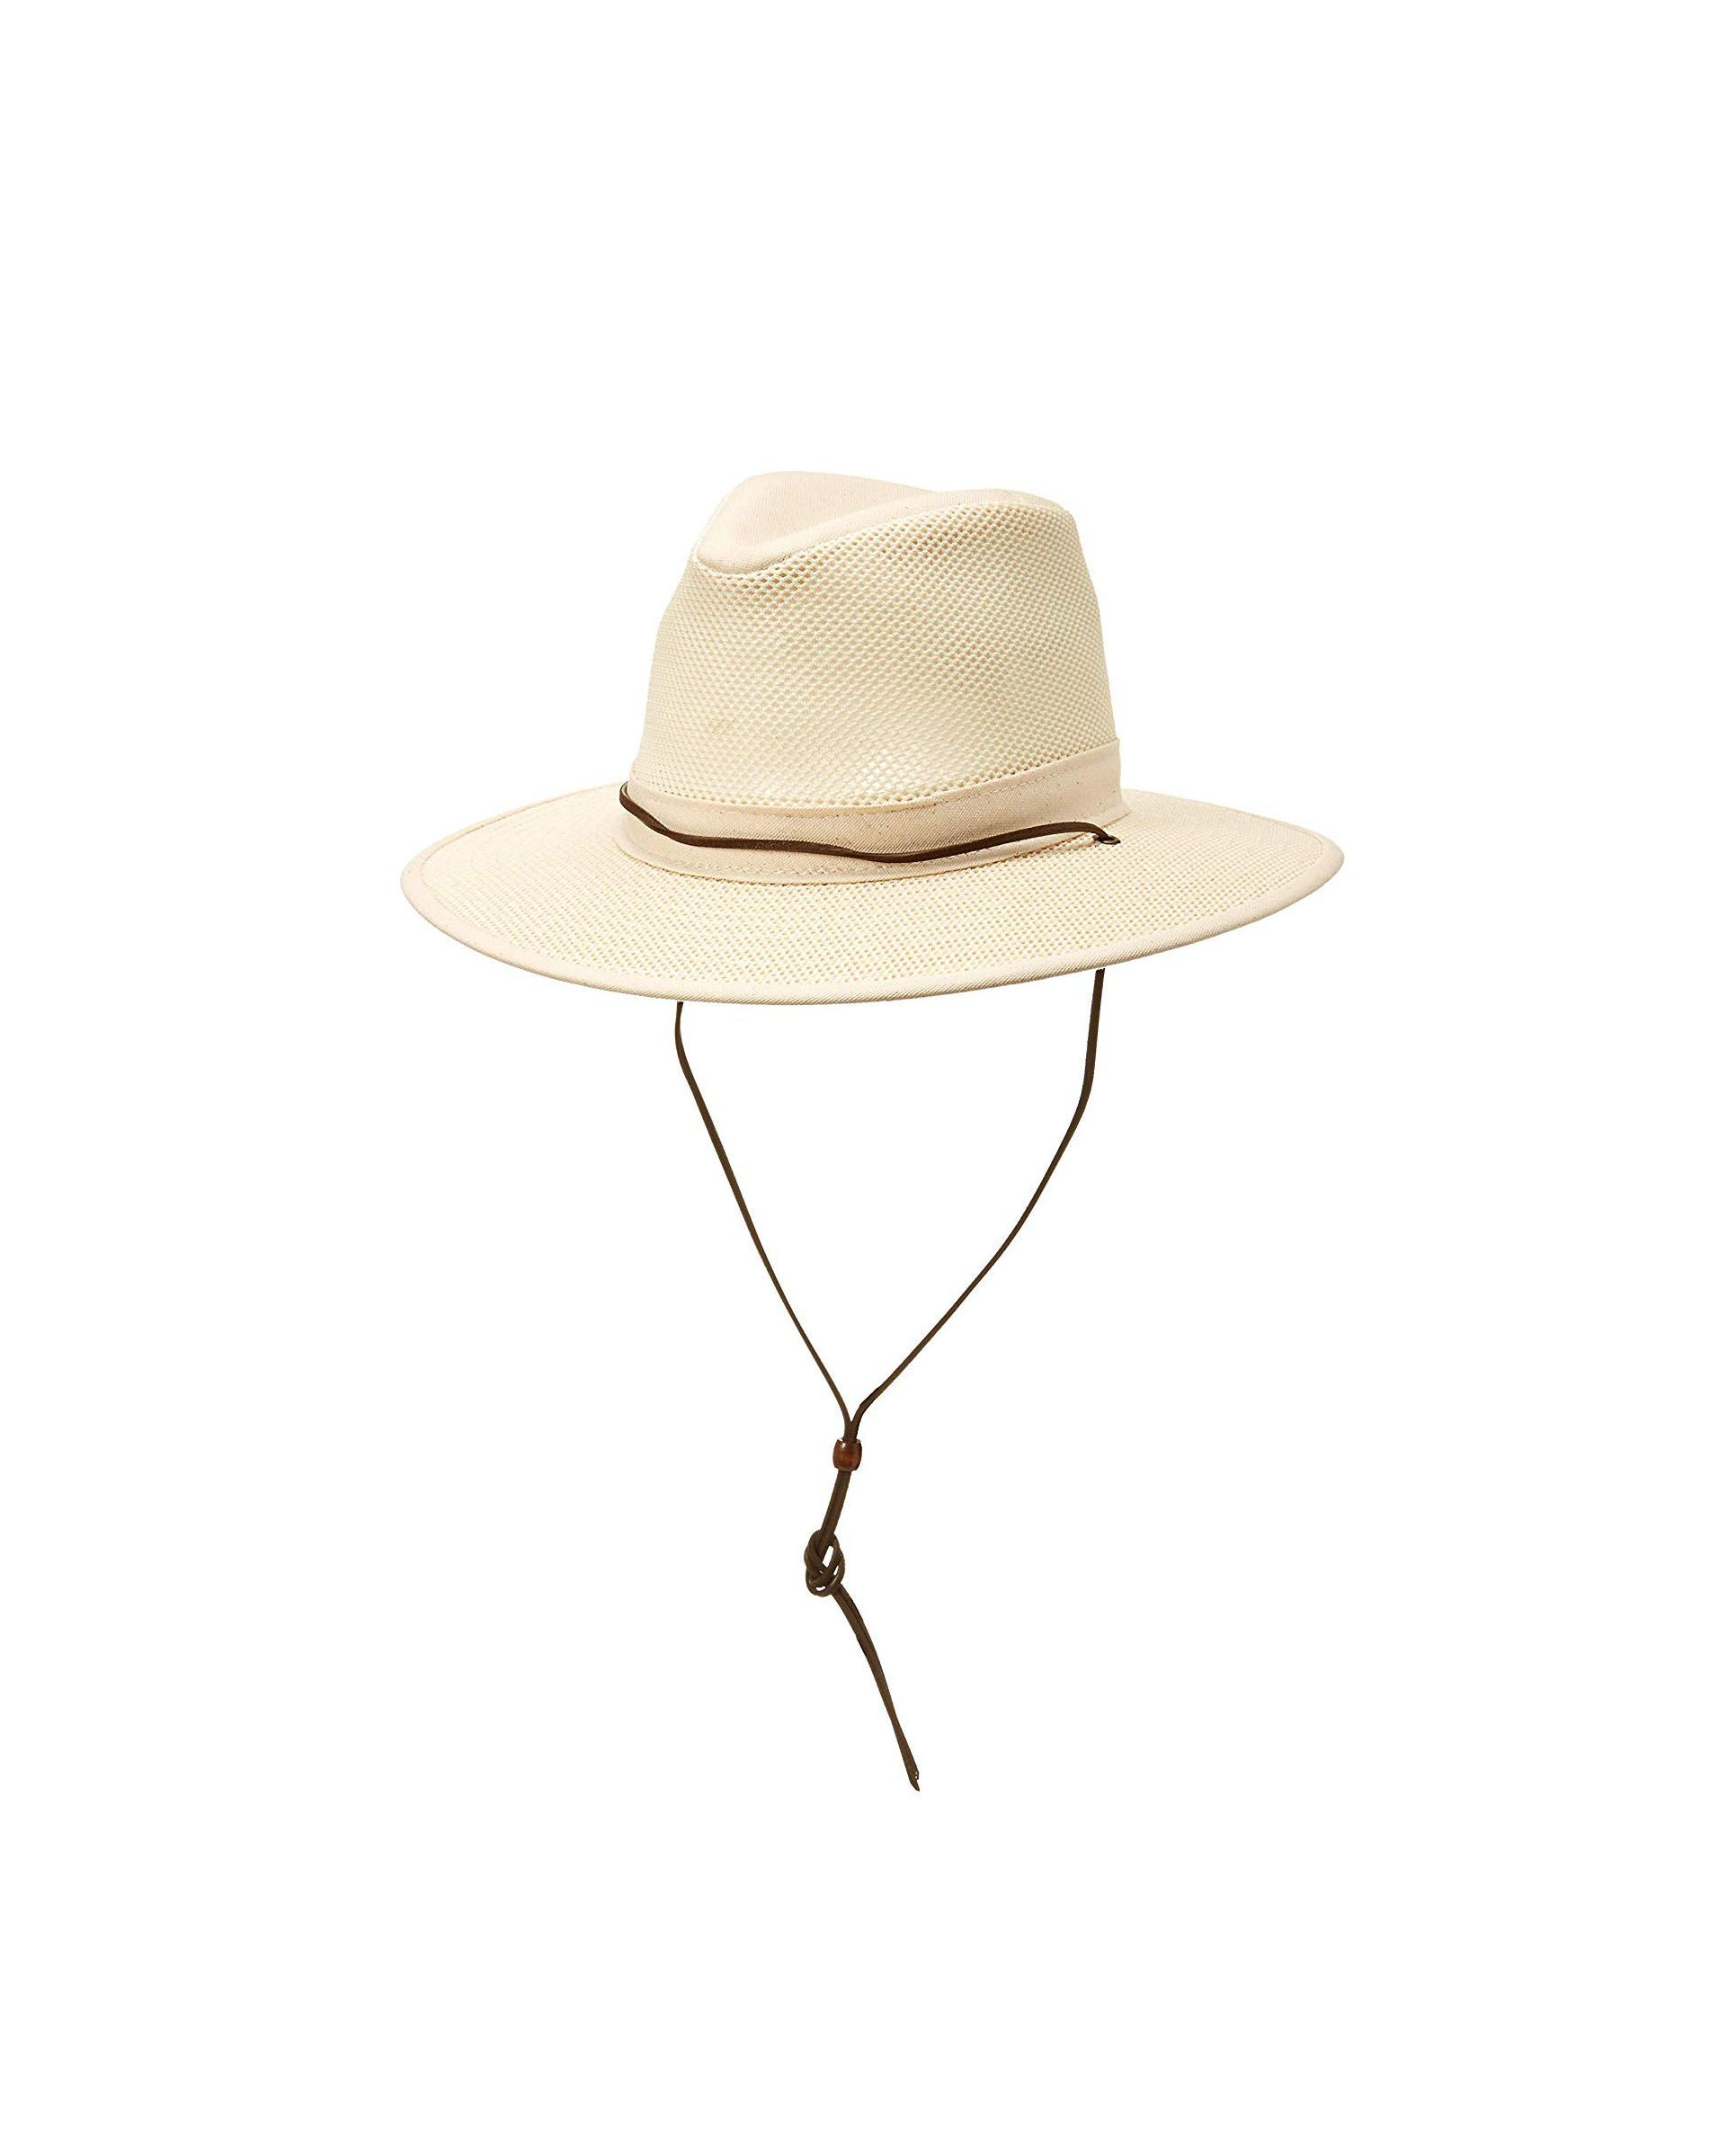 0c77d2d3f30d77 25 Best Sun Hats for Summer 2019 - Floppy, Woven Straw, More